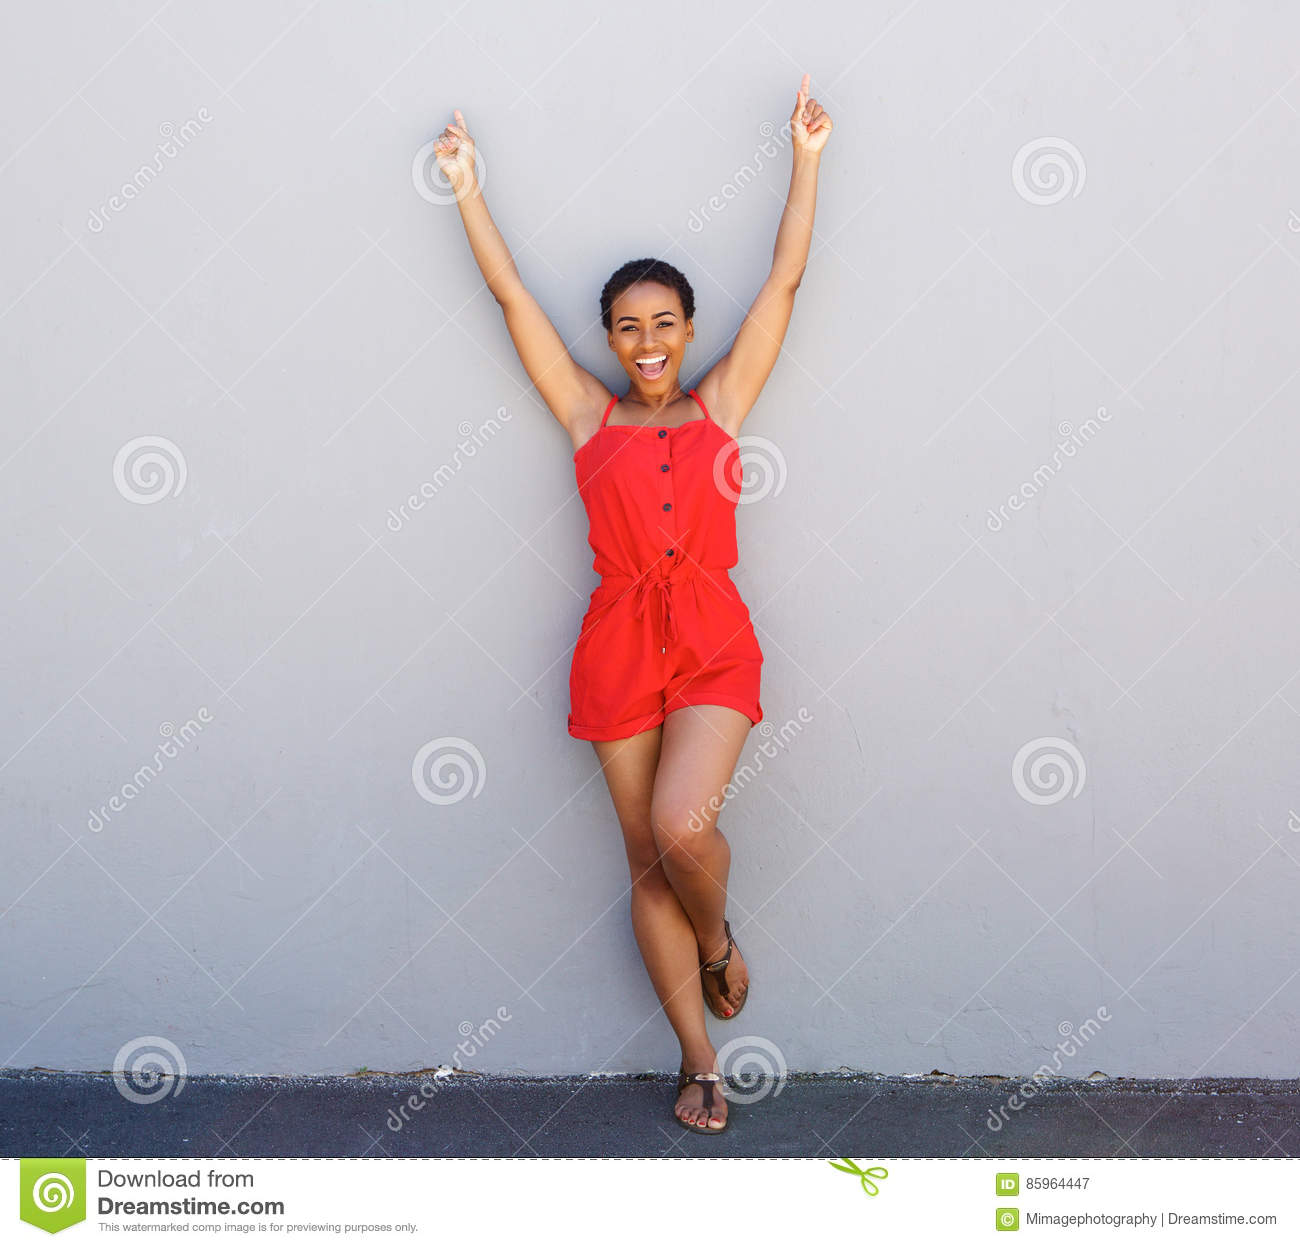 Happy young woman leaning against gray wall with arms raised